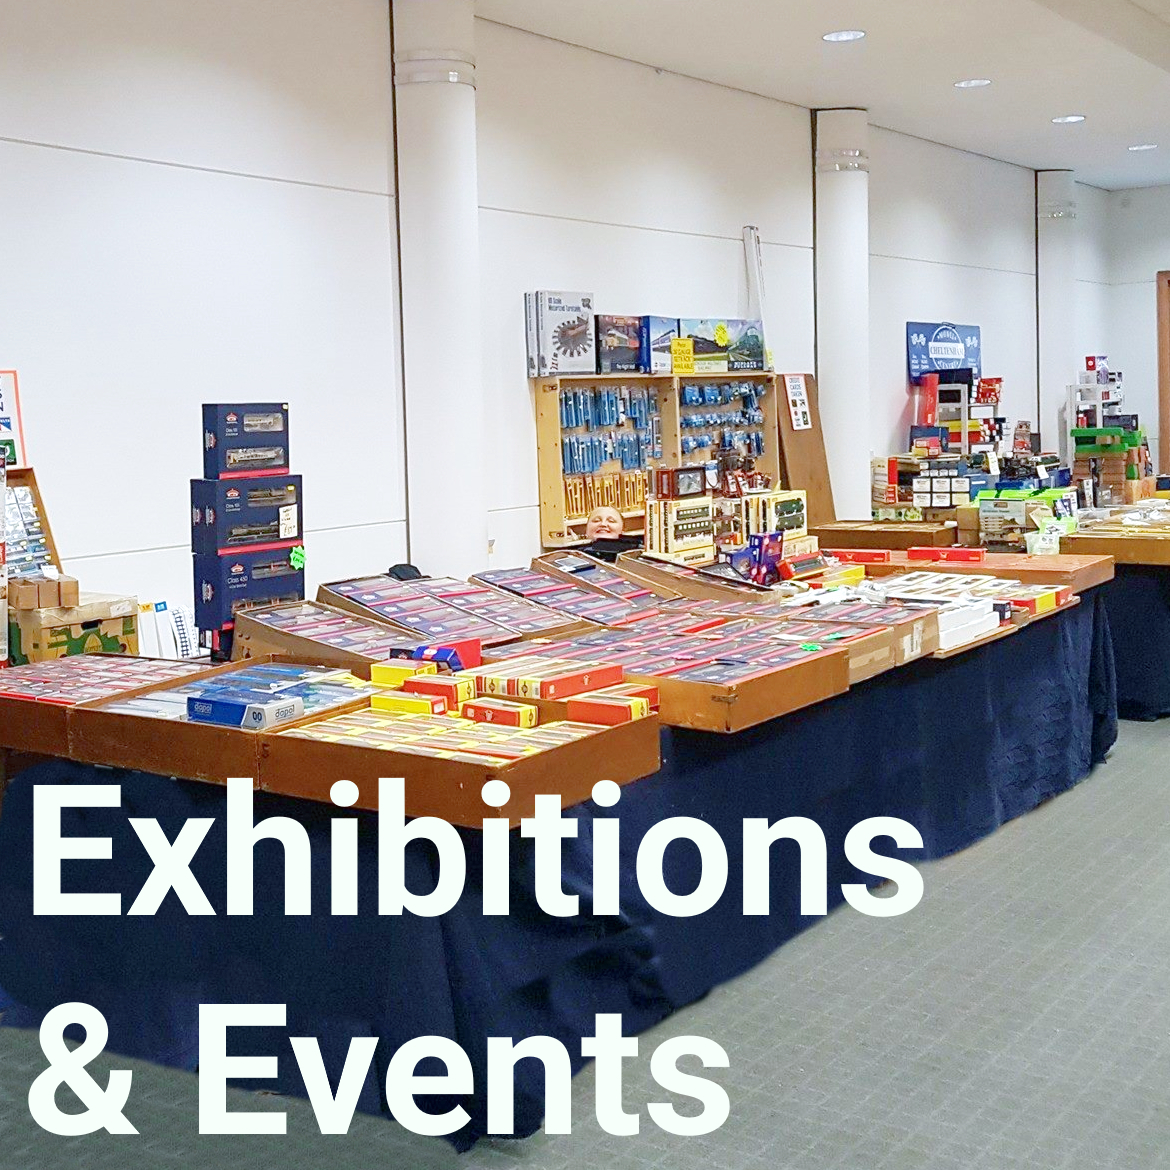 Ehibitions & Events